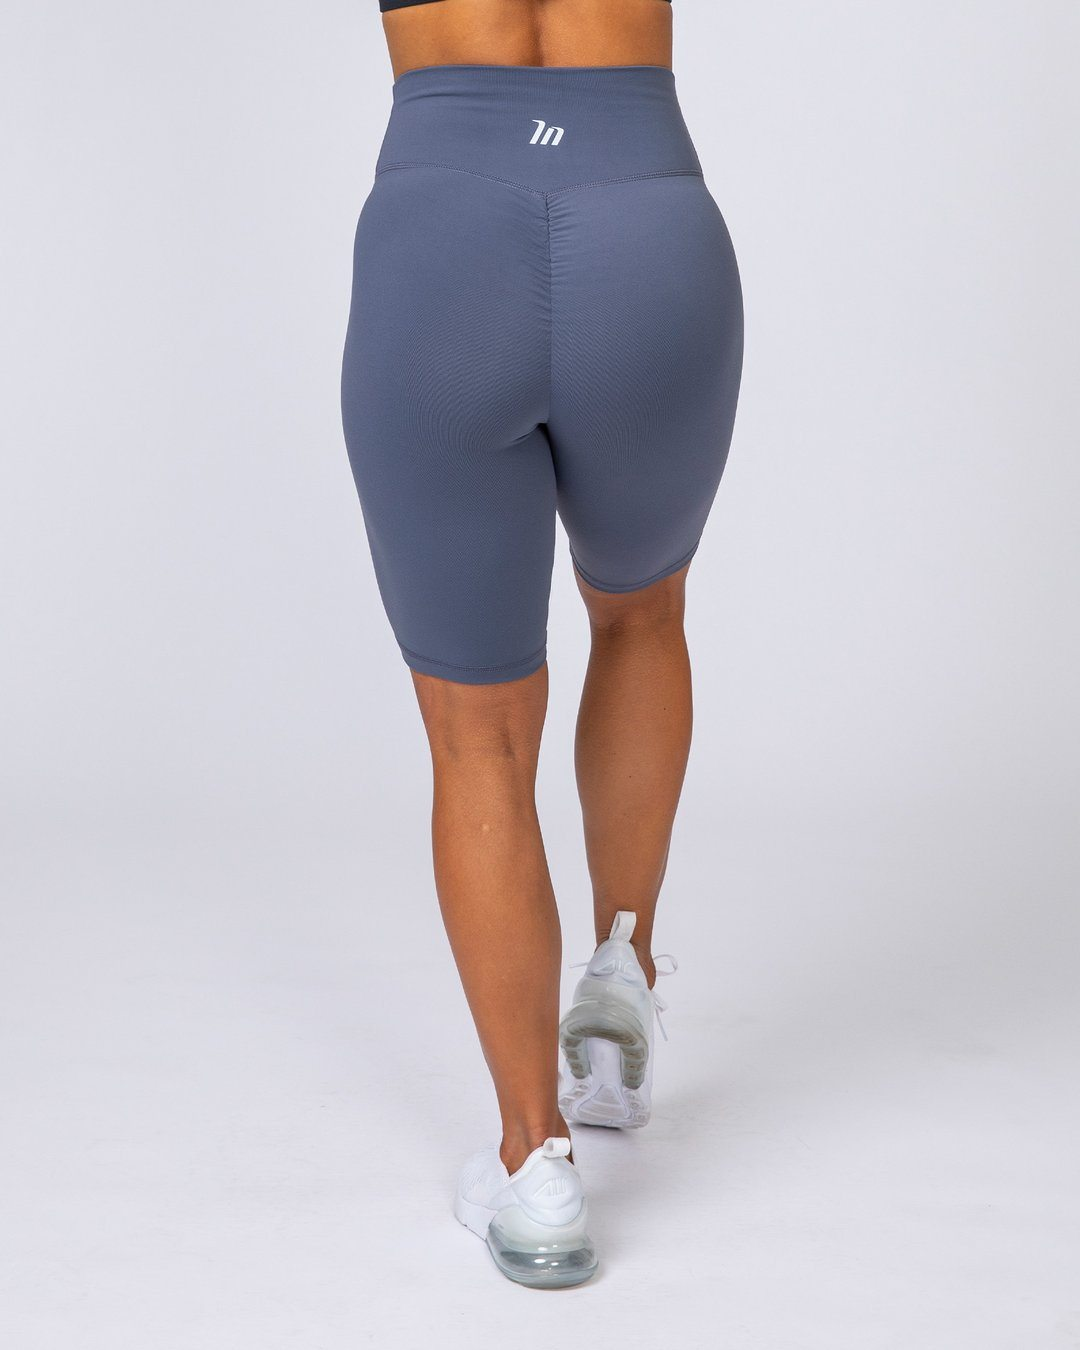 Muscle Nation Referee Length High Waist Scrunch - Titanium